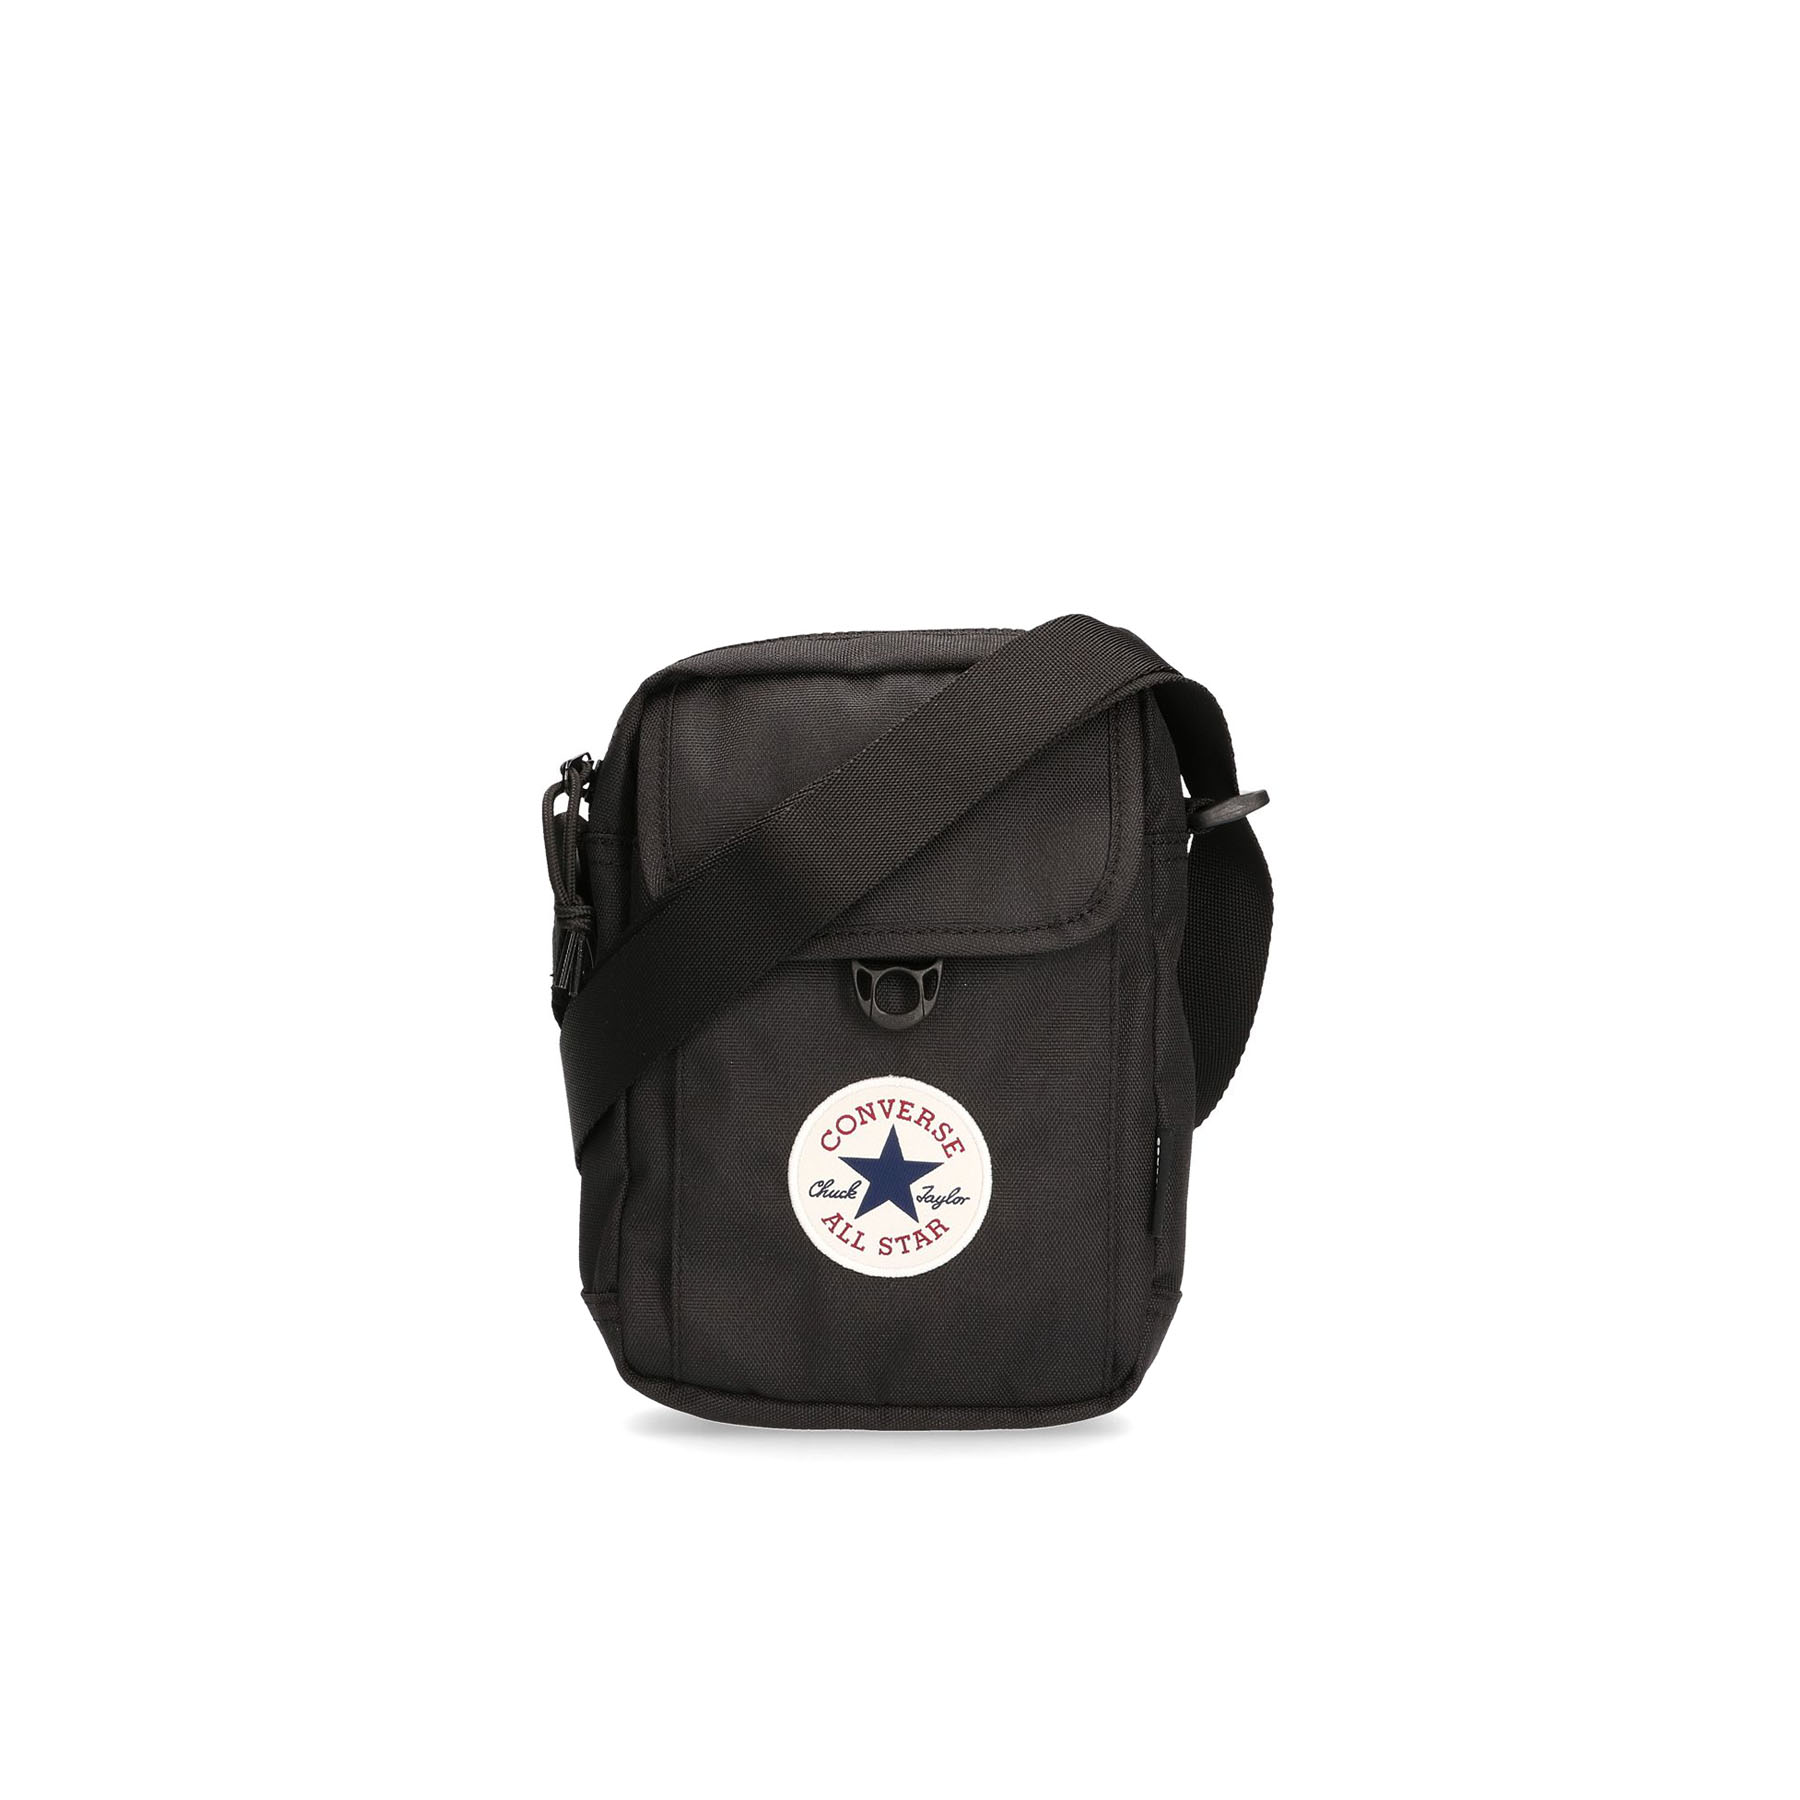 Converse Cross Body 2 Messenger Bag | Free Delivery Options